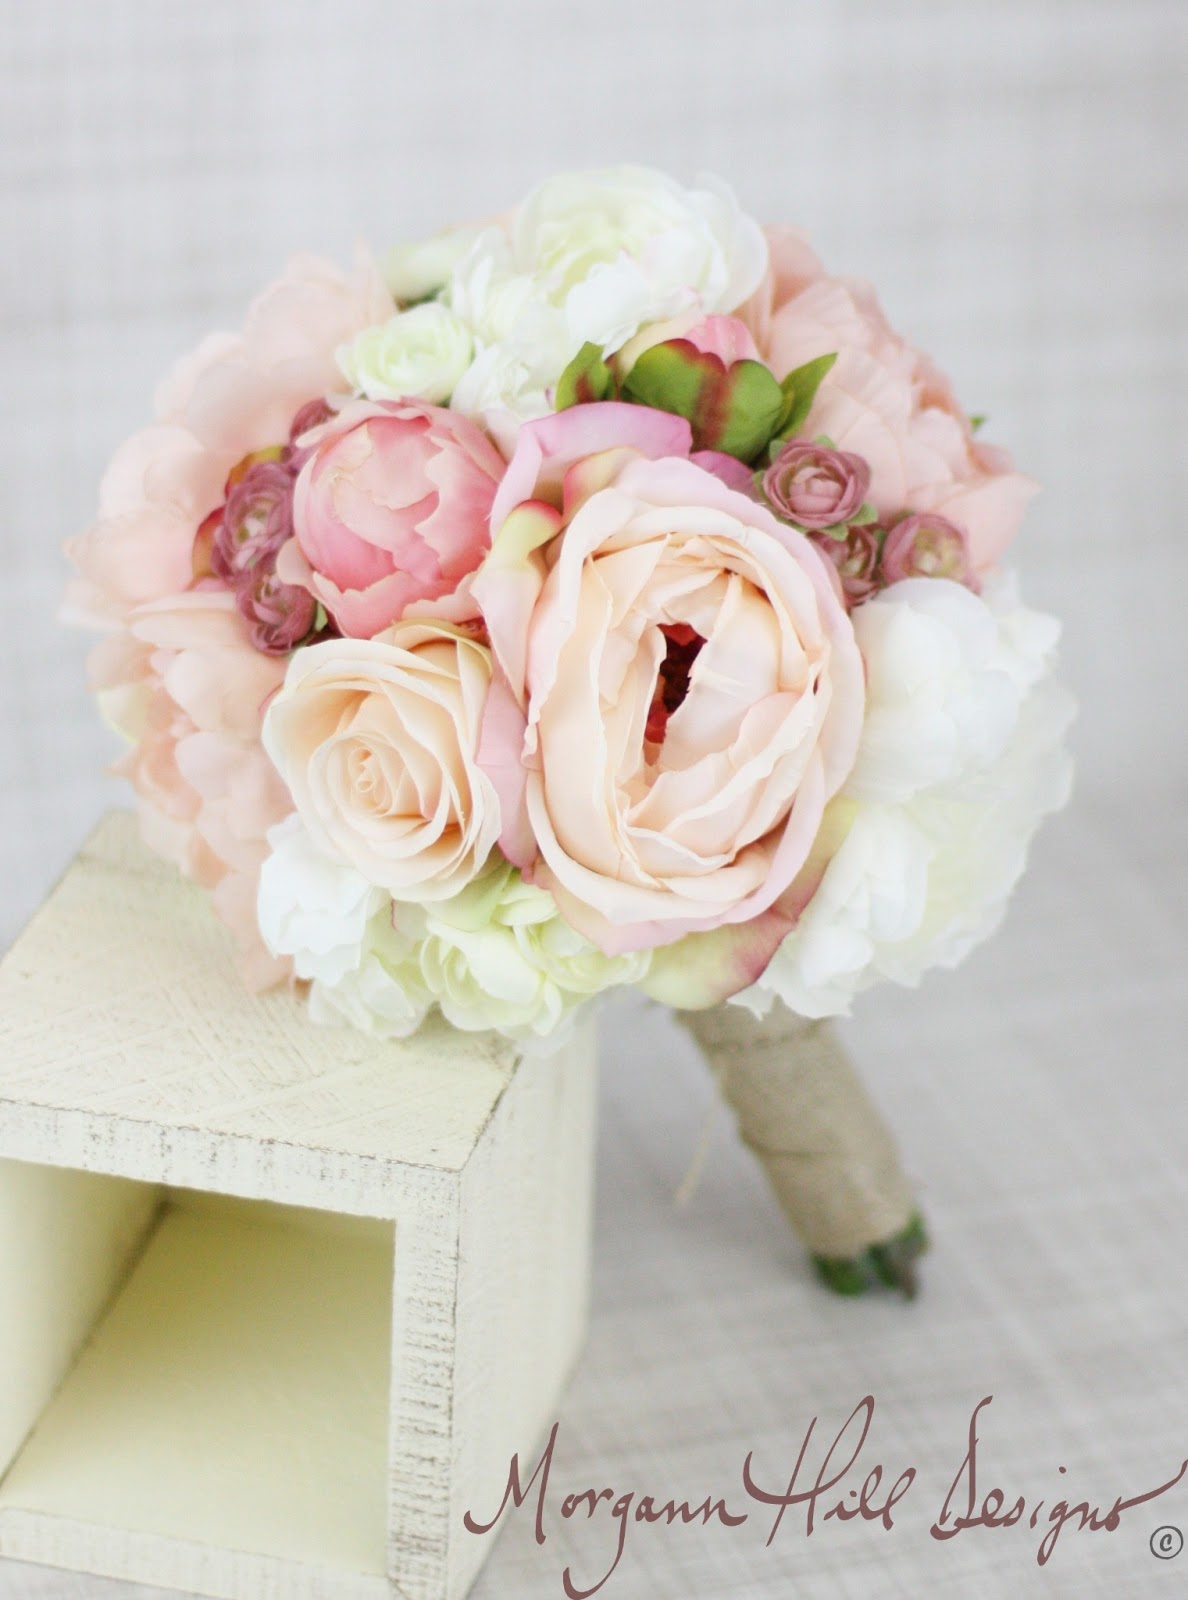 Morgann Hill Designs Silk Bridesmaid Bouquet Peony Peonies Roses Ranunculus Country Wedding